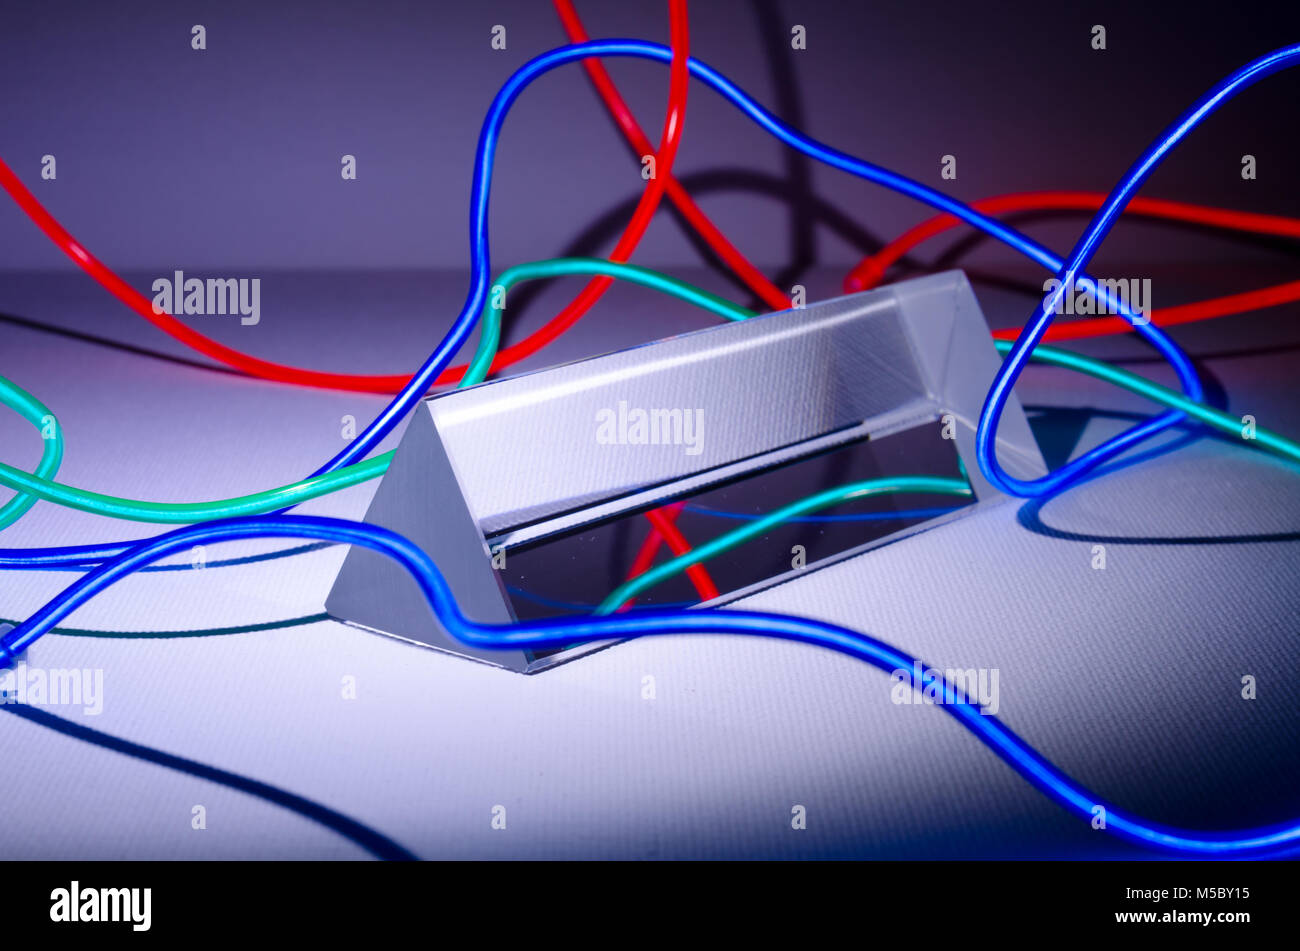 A Studio Still-life Photograph of a Triangular Glass Prism with Abstract Coloured Neon Lighting - Stock Image